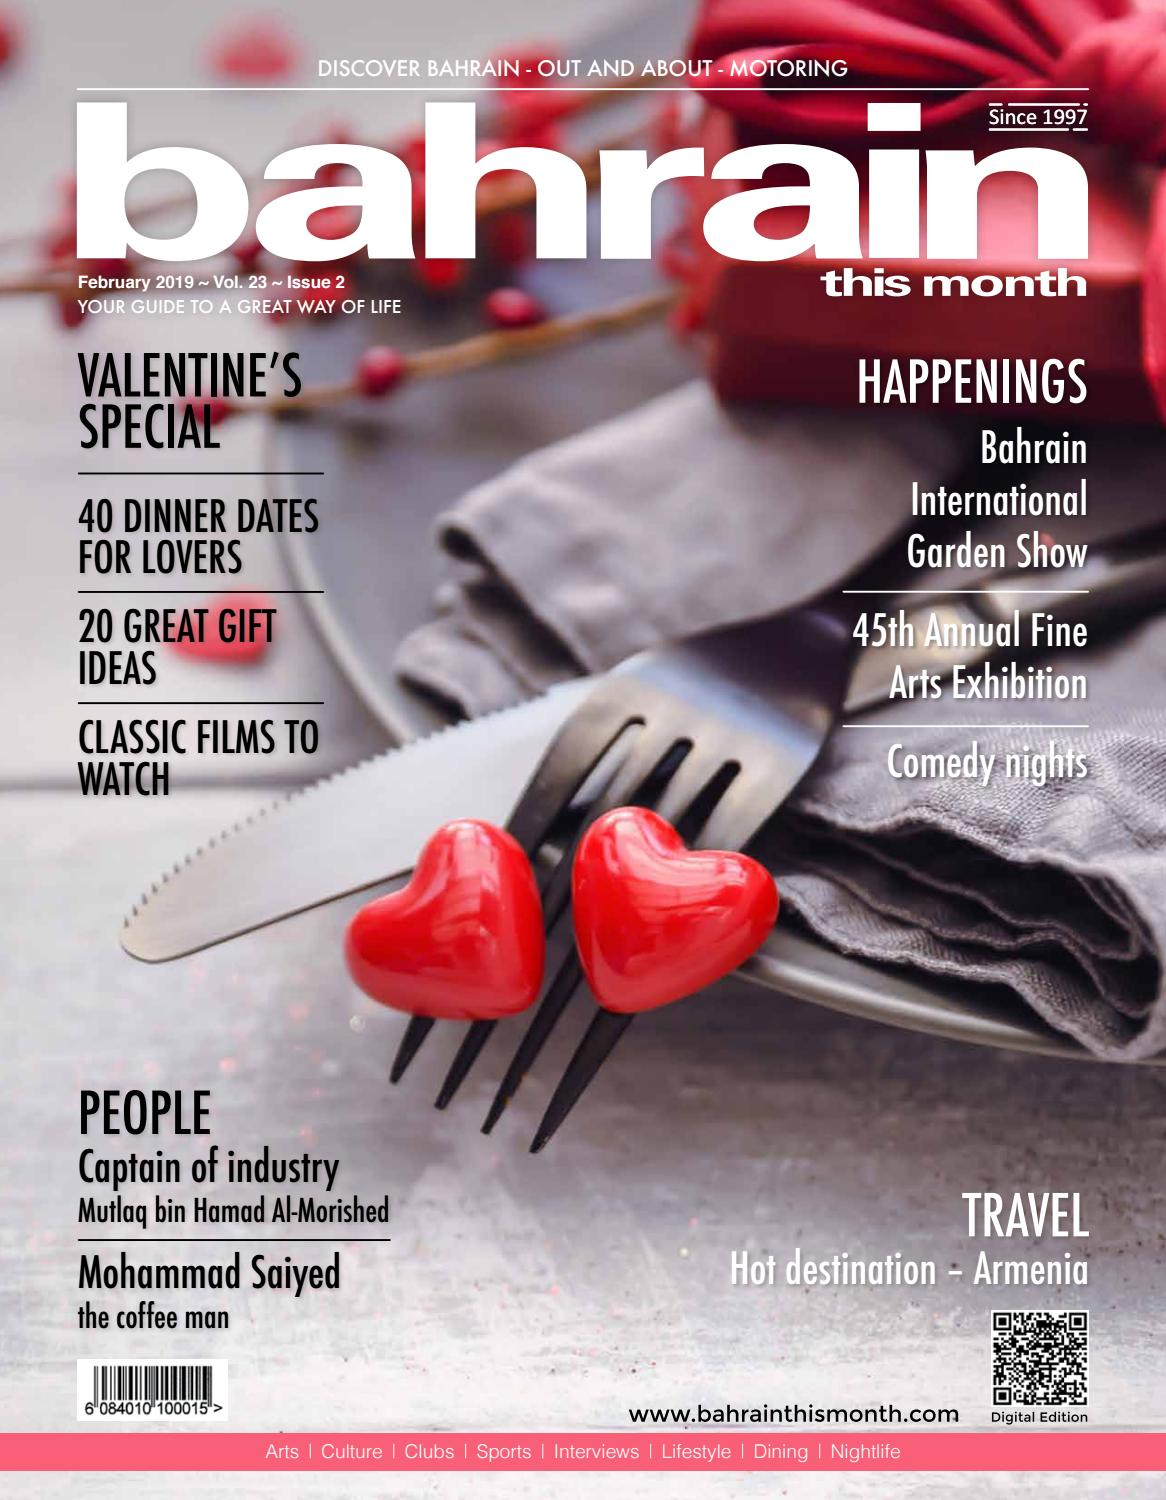 446695eb28823 Bahrain This Month - February 2019 by Red House Marketing - issuu